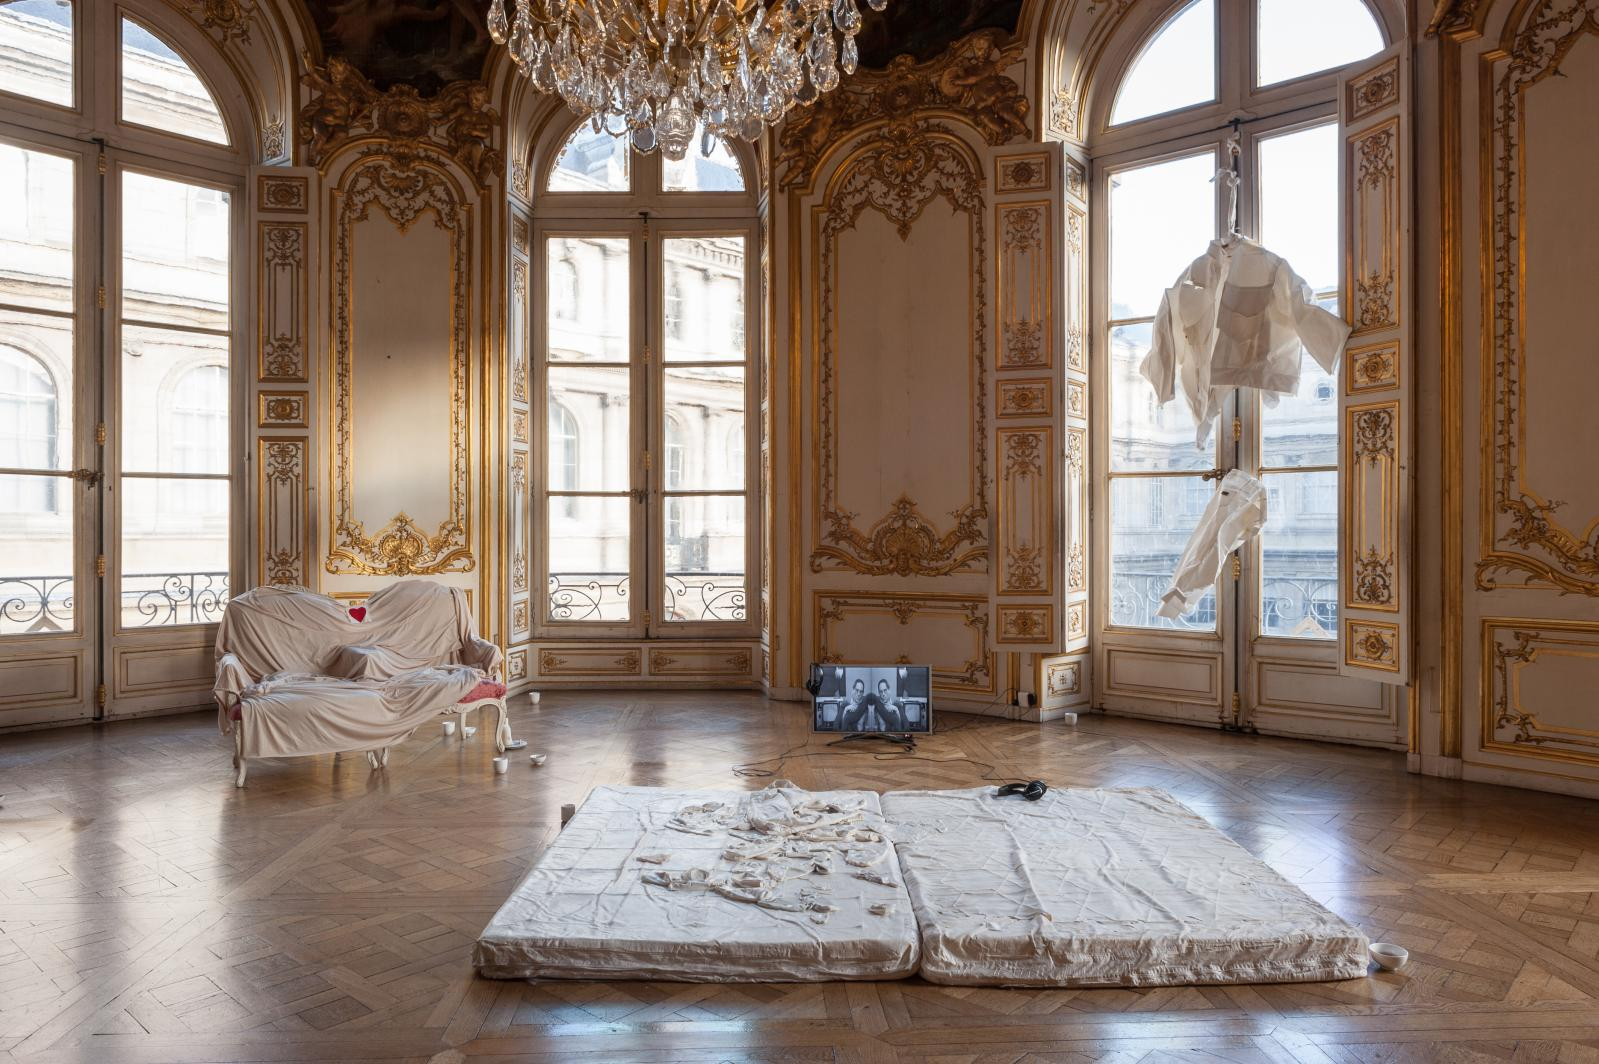 Exhibition view, AWARE Prize 2018, Archives Nationales, 2018Photo: Emile Ouromov